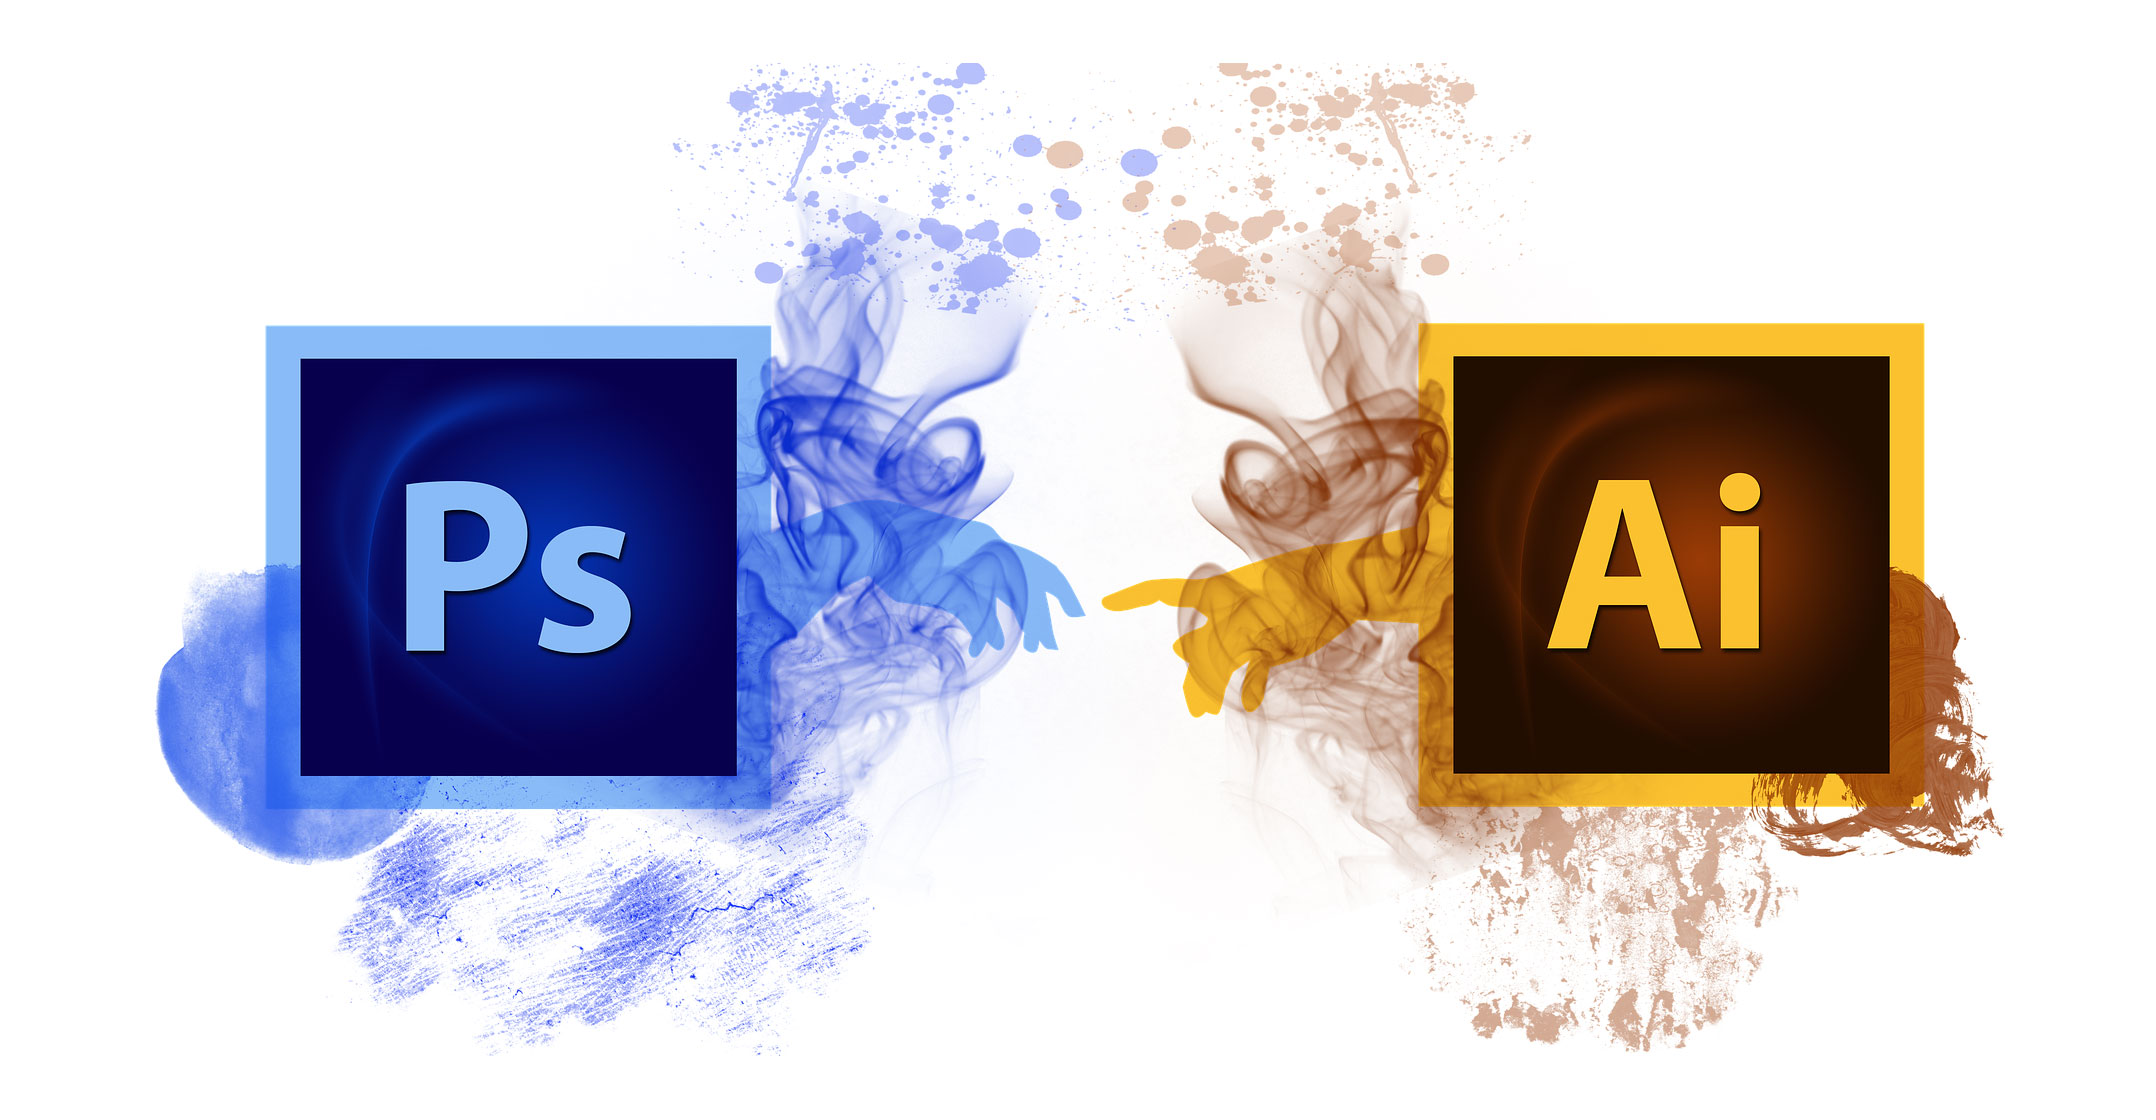 Adobe rolls out Illustrator for iPad - TechCentral